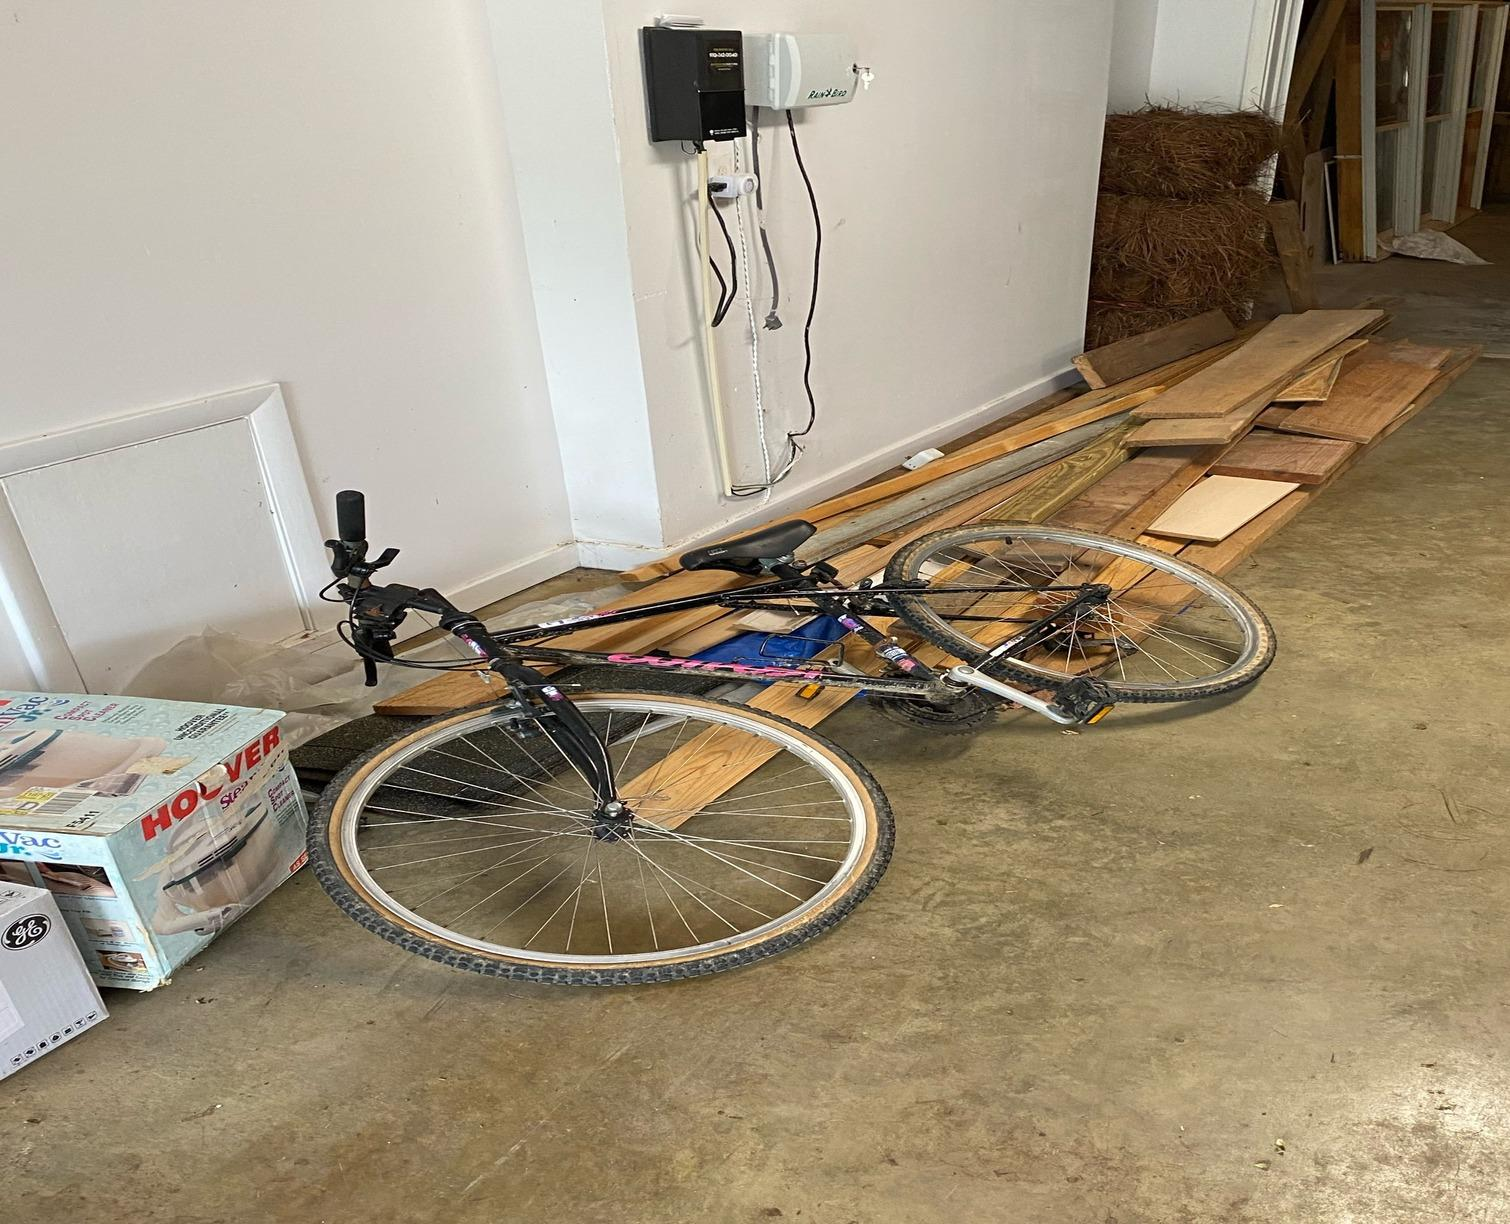 Junk Removal in Wrightsville Beach, NC - Before Photo